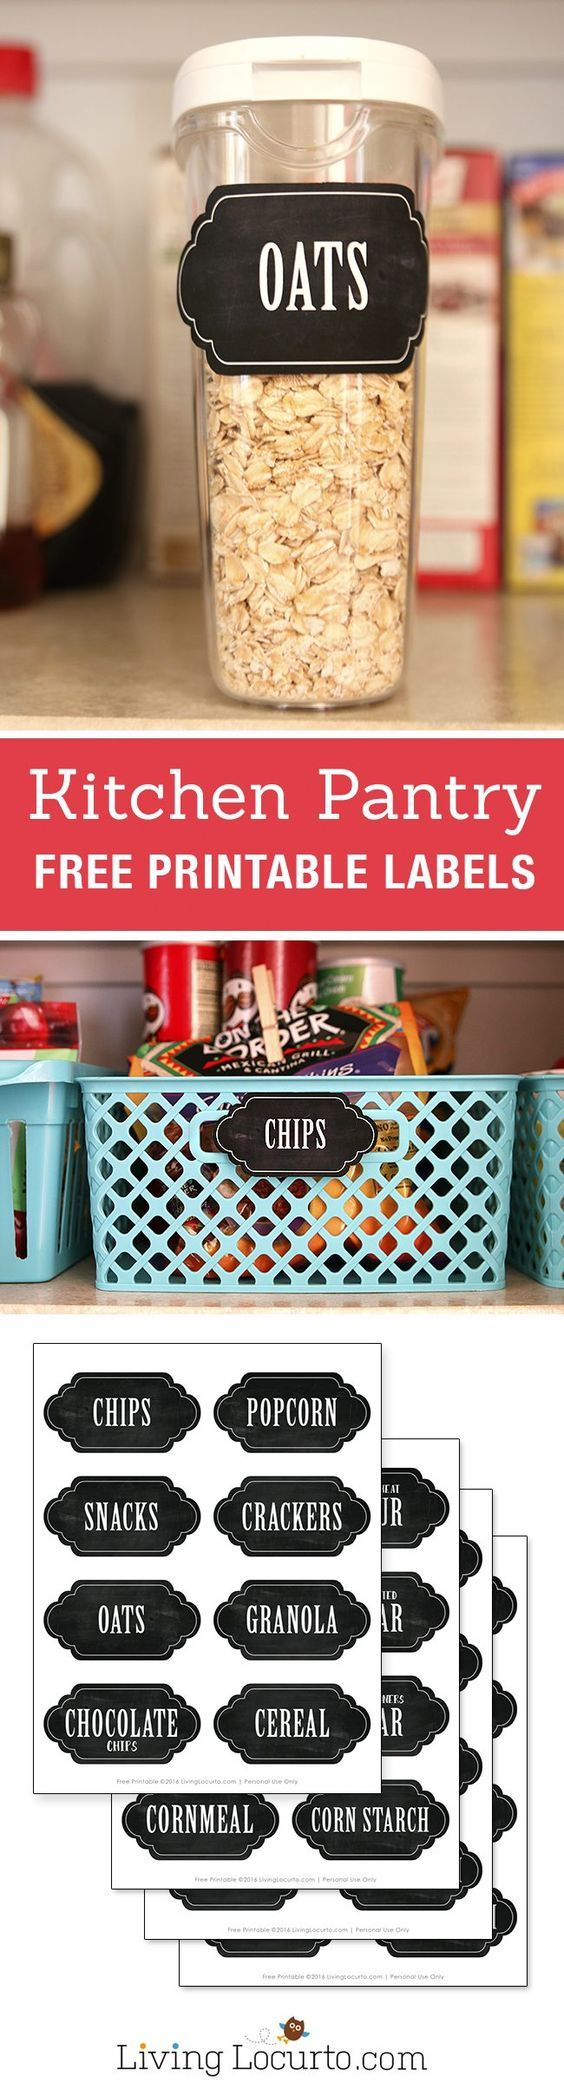 best organization of home images on pinterest kitchens my